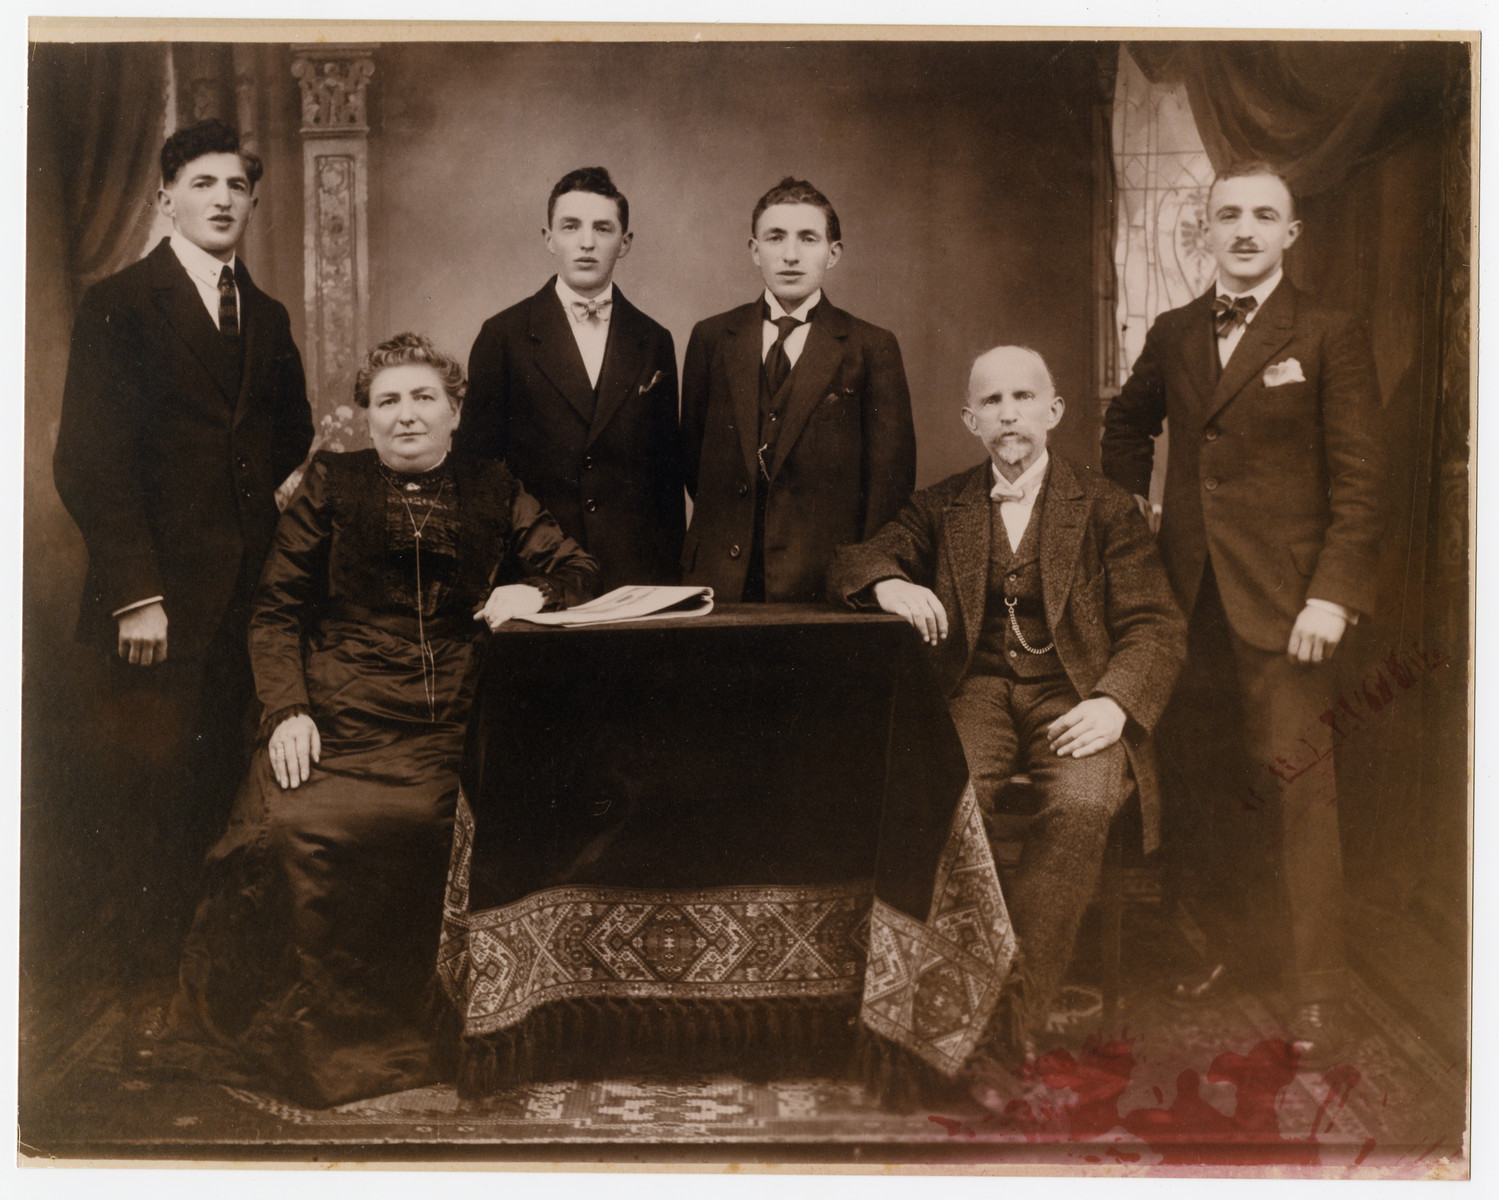 Studio portrait of the Zimmern family in Walldurn, Germany.  Seated are Bertha and Harold Zimmern.  Behind them are their four sons.  Julius (who immigrated to the United States before the Holocaust) is on the far left.  David (the father of the donor) is on the far right.  In the middle are Hugo and Leopold.